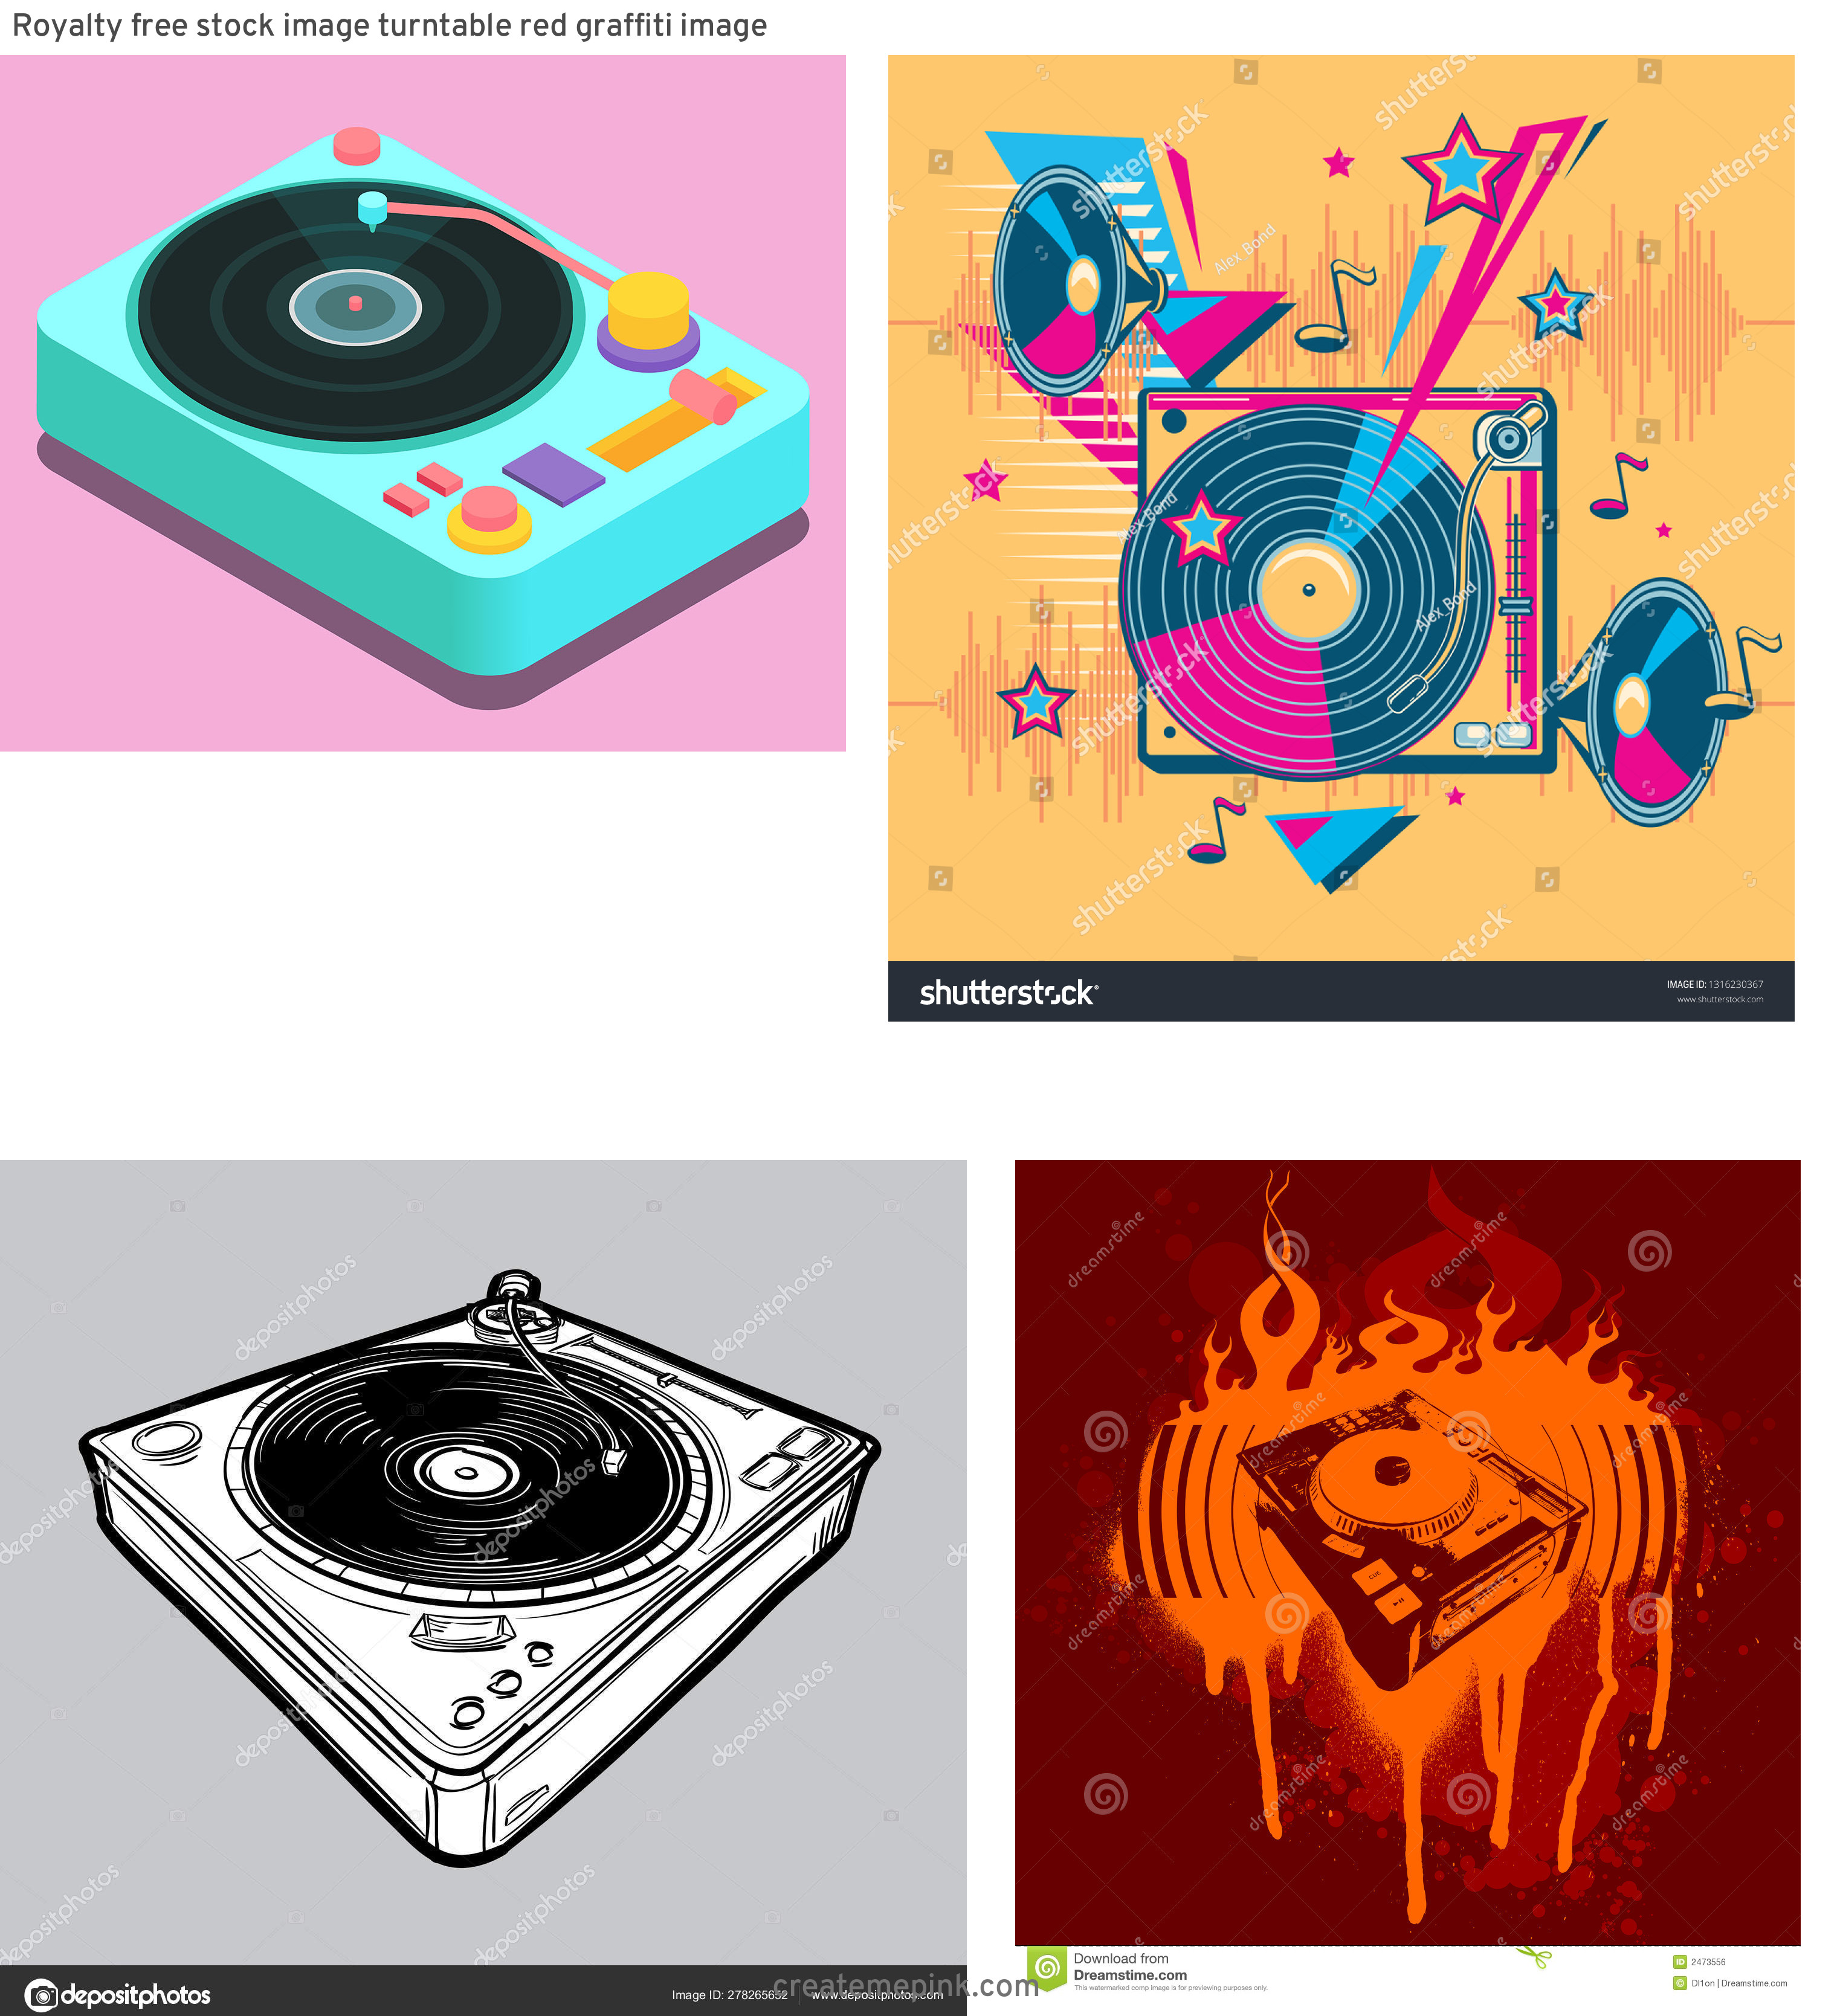 Funk Vector Turntables: Royalty Free Stock Image Turntable Red Graffiti Image